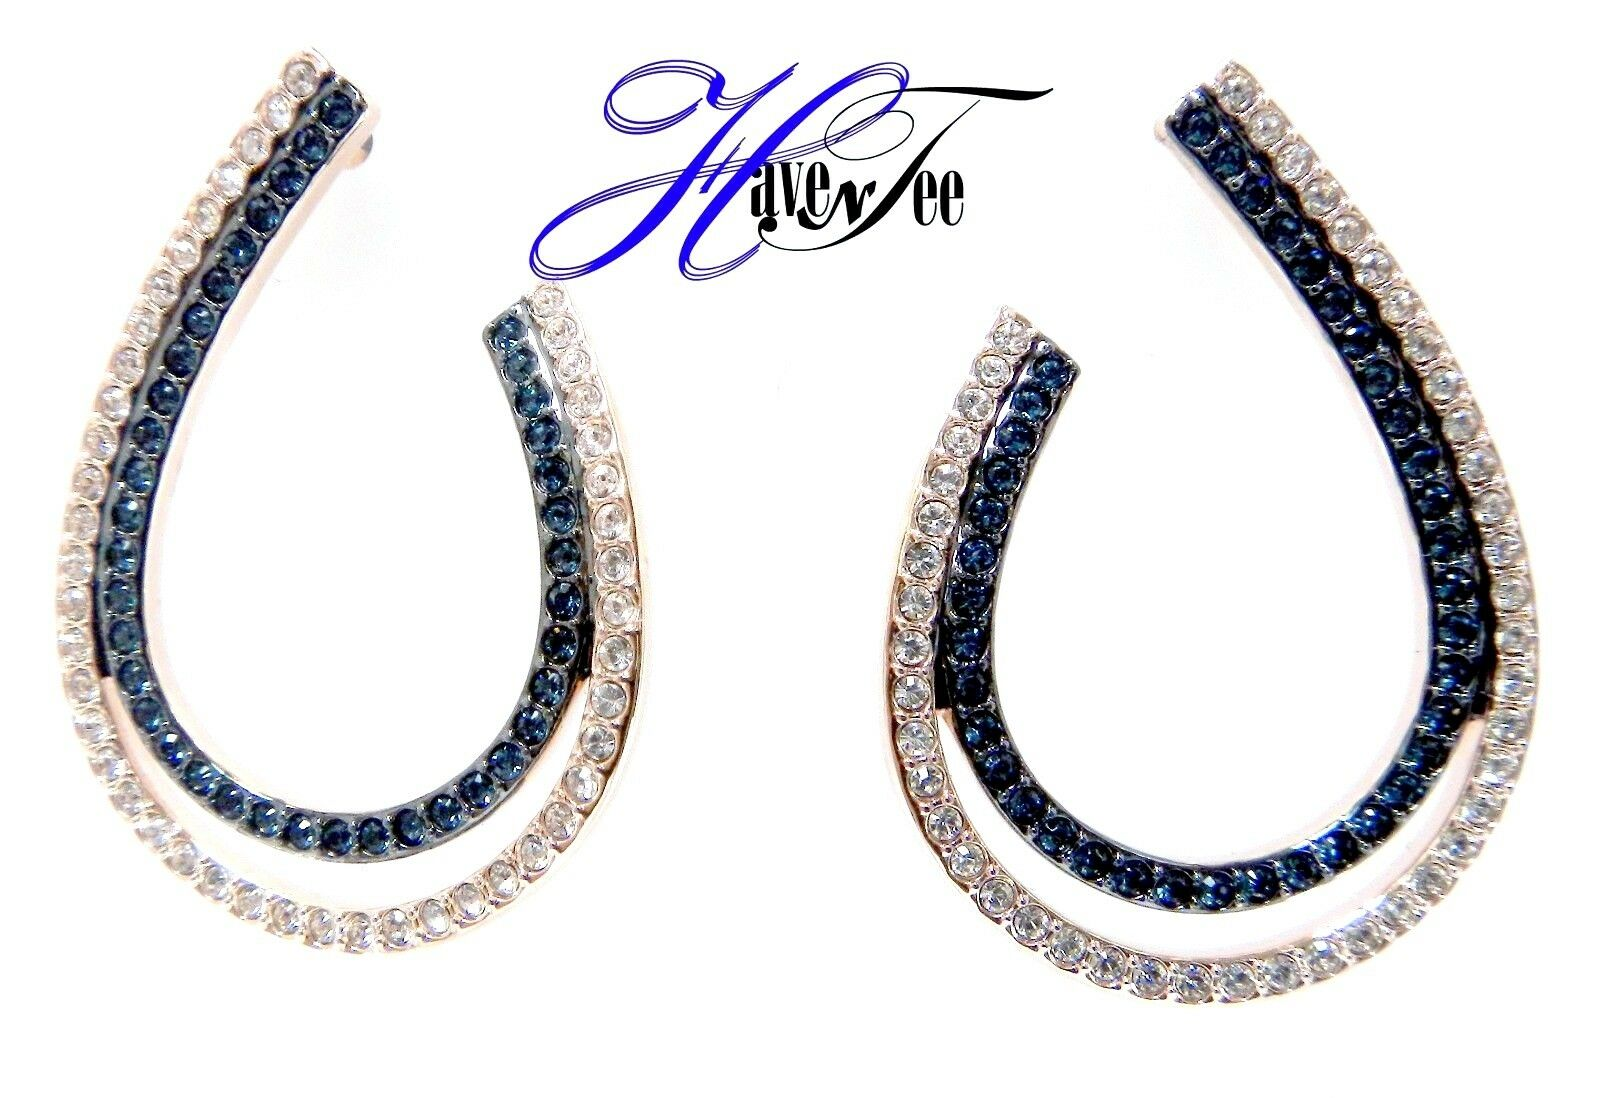 LEMON HOOP PIERCED EARRINGS, blueE MIXED PLATING 2018 SWAROVSKI JEWELRY 5382033